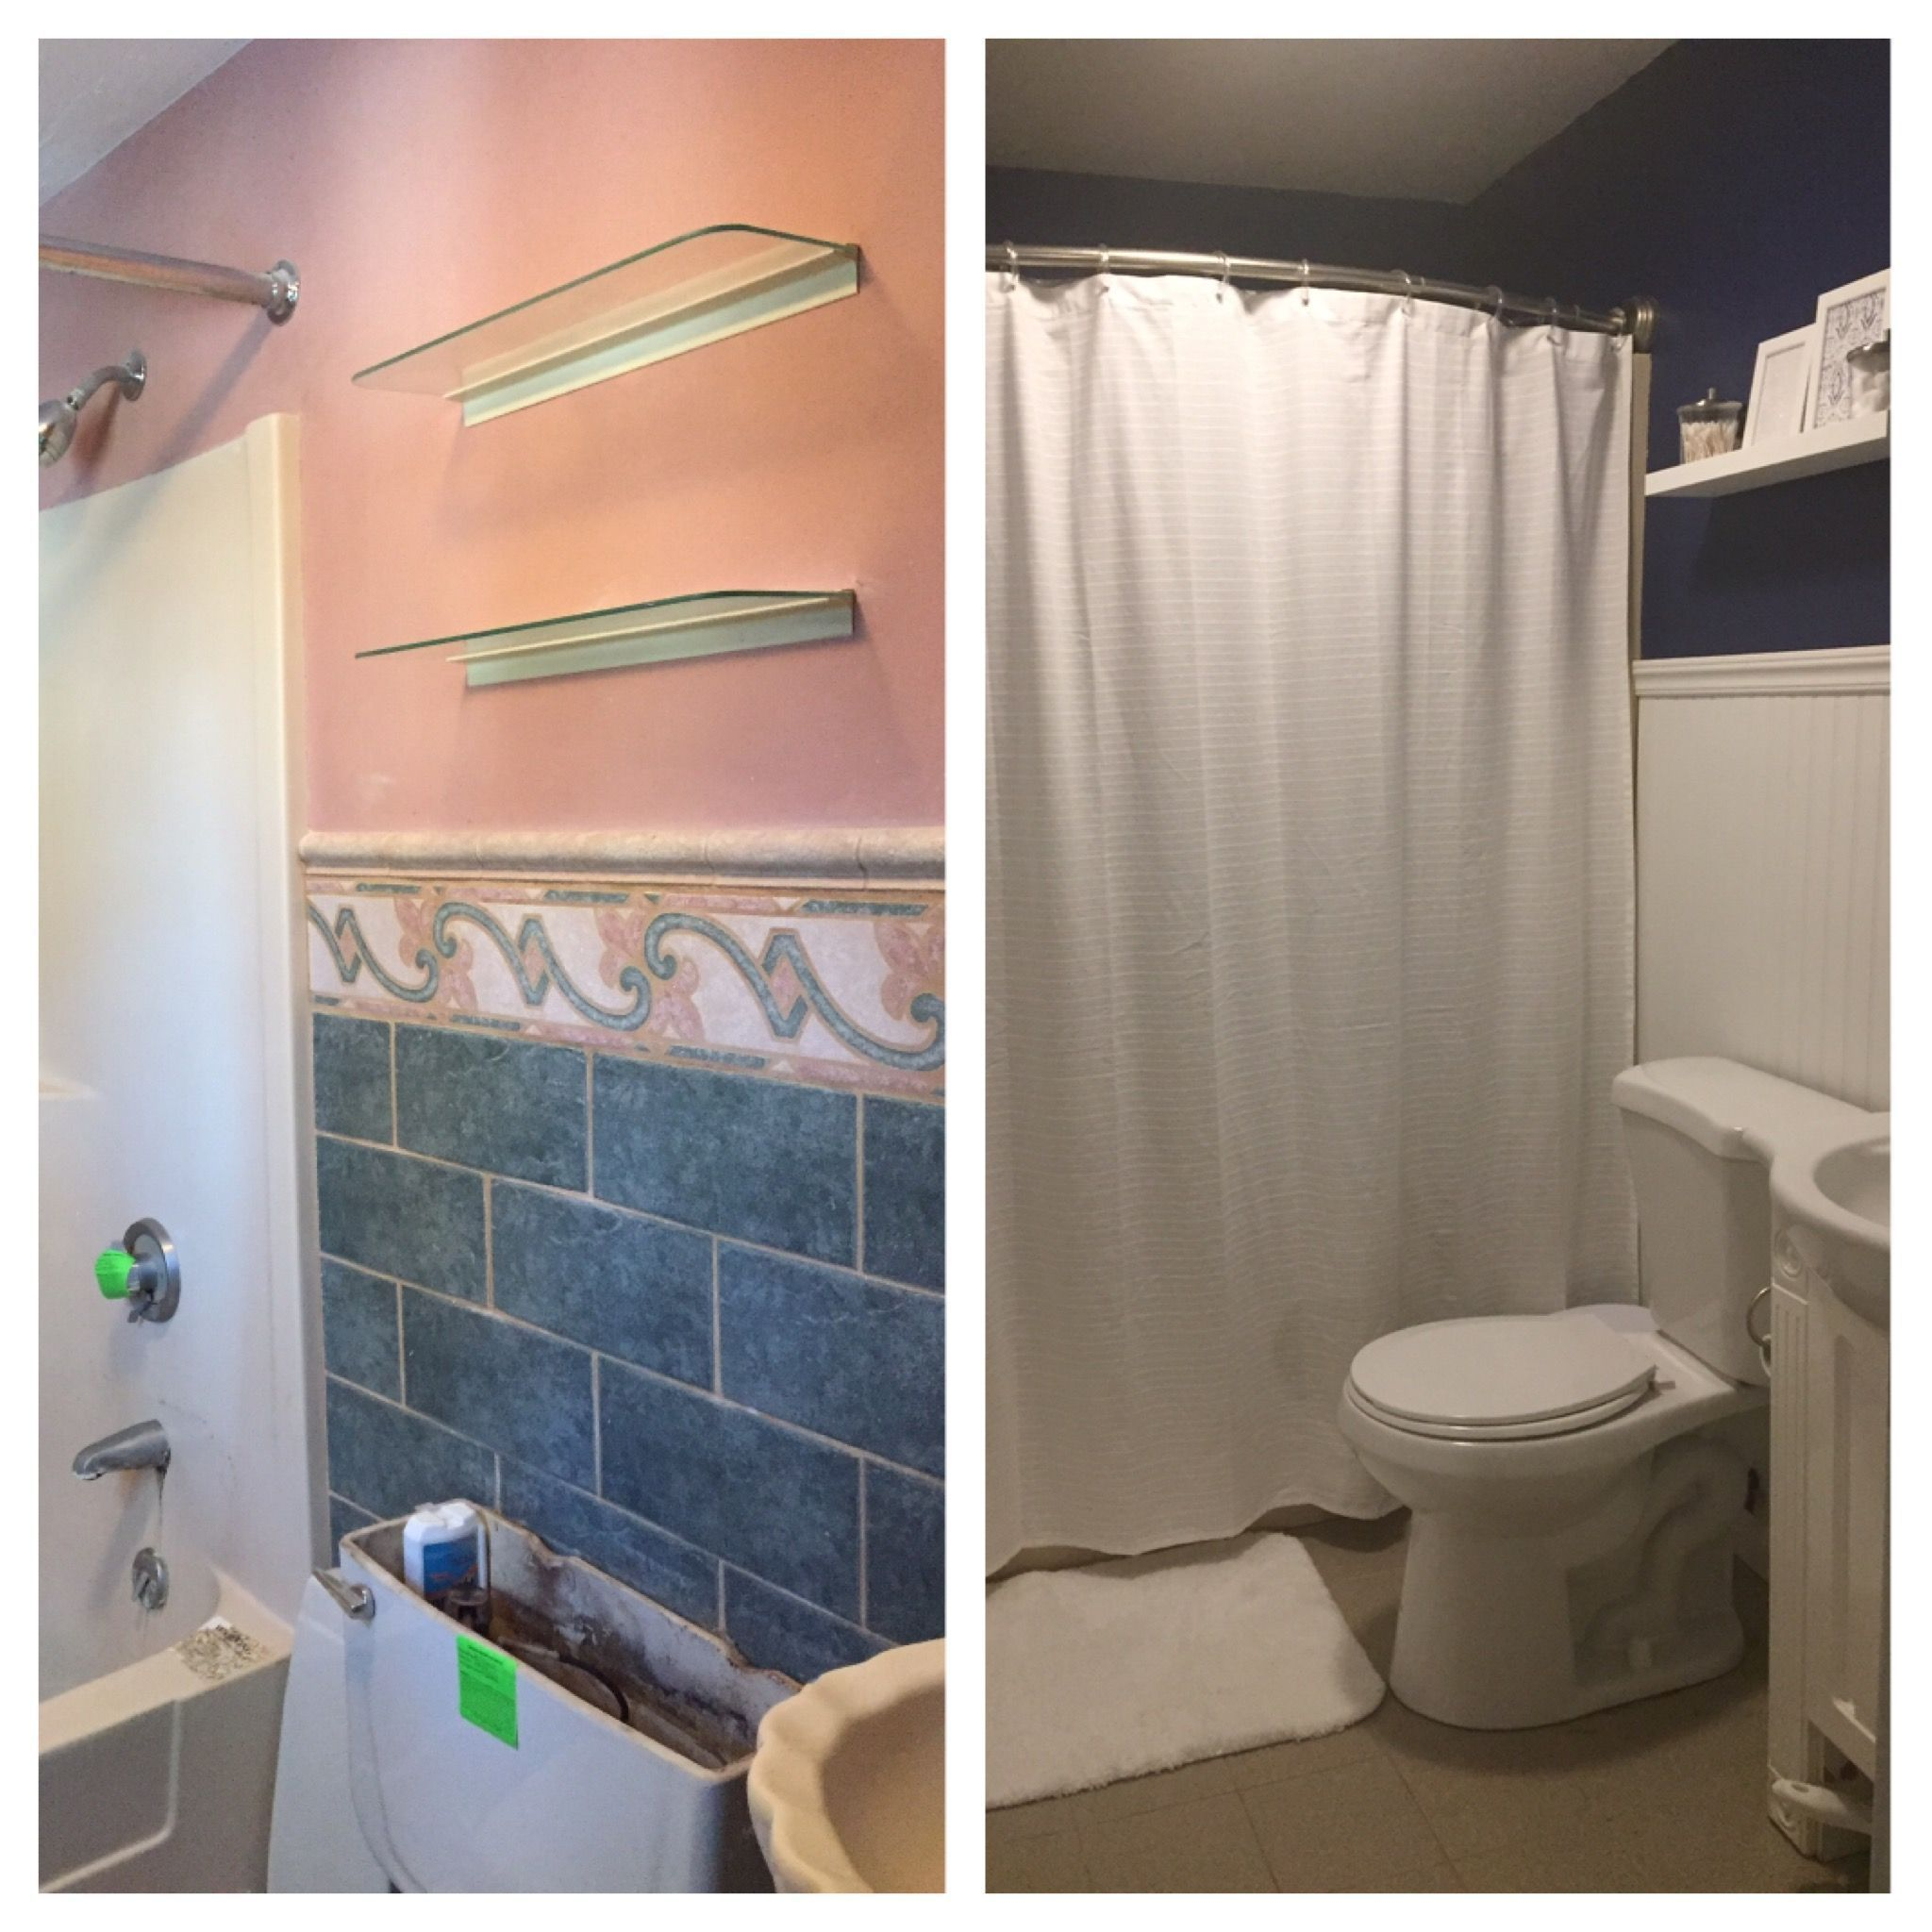 Bathroom Remodel On A Budget For Under $300